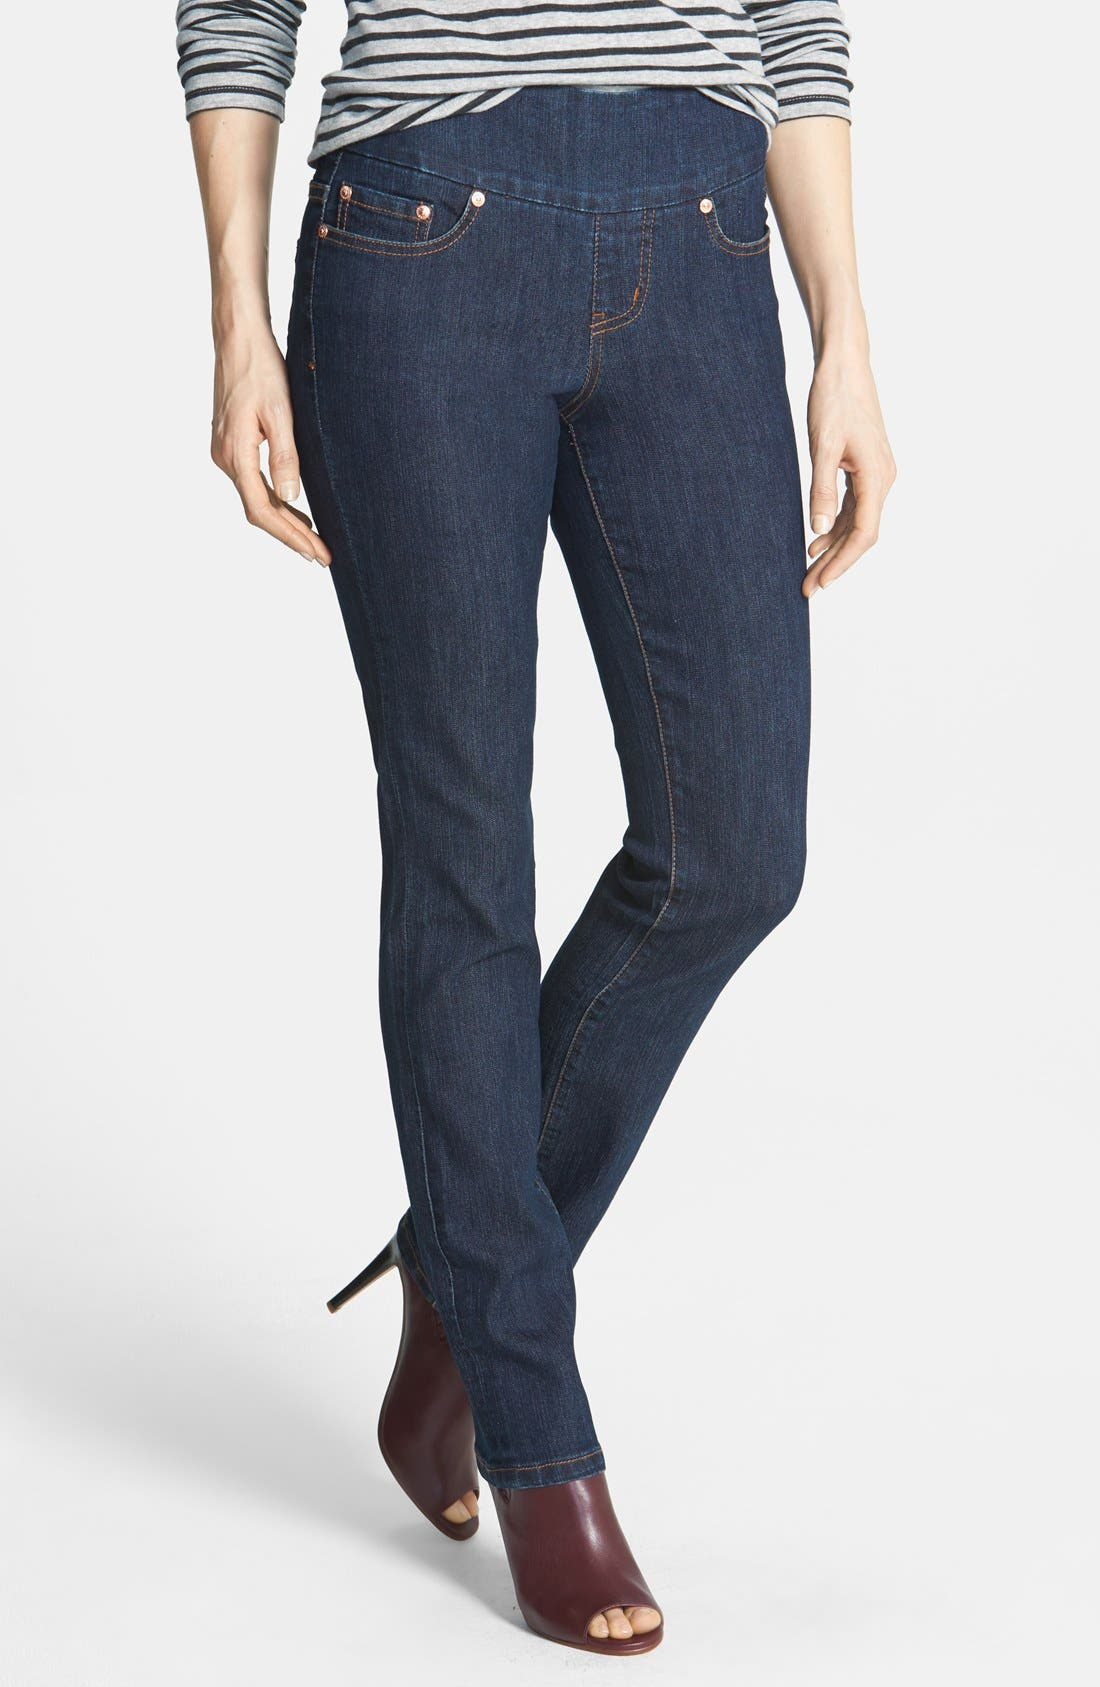 Alternate Image 1 Selected - Jag Jeans 'Peri' Pull-On Straight Leg Jeans (Dark Shadow) (Online Only)